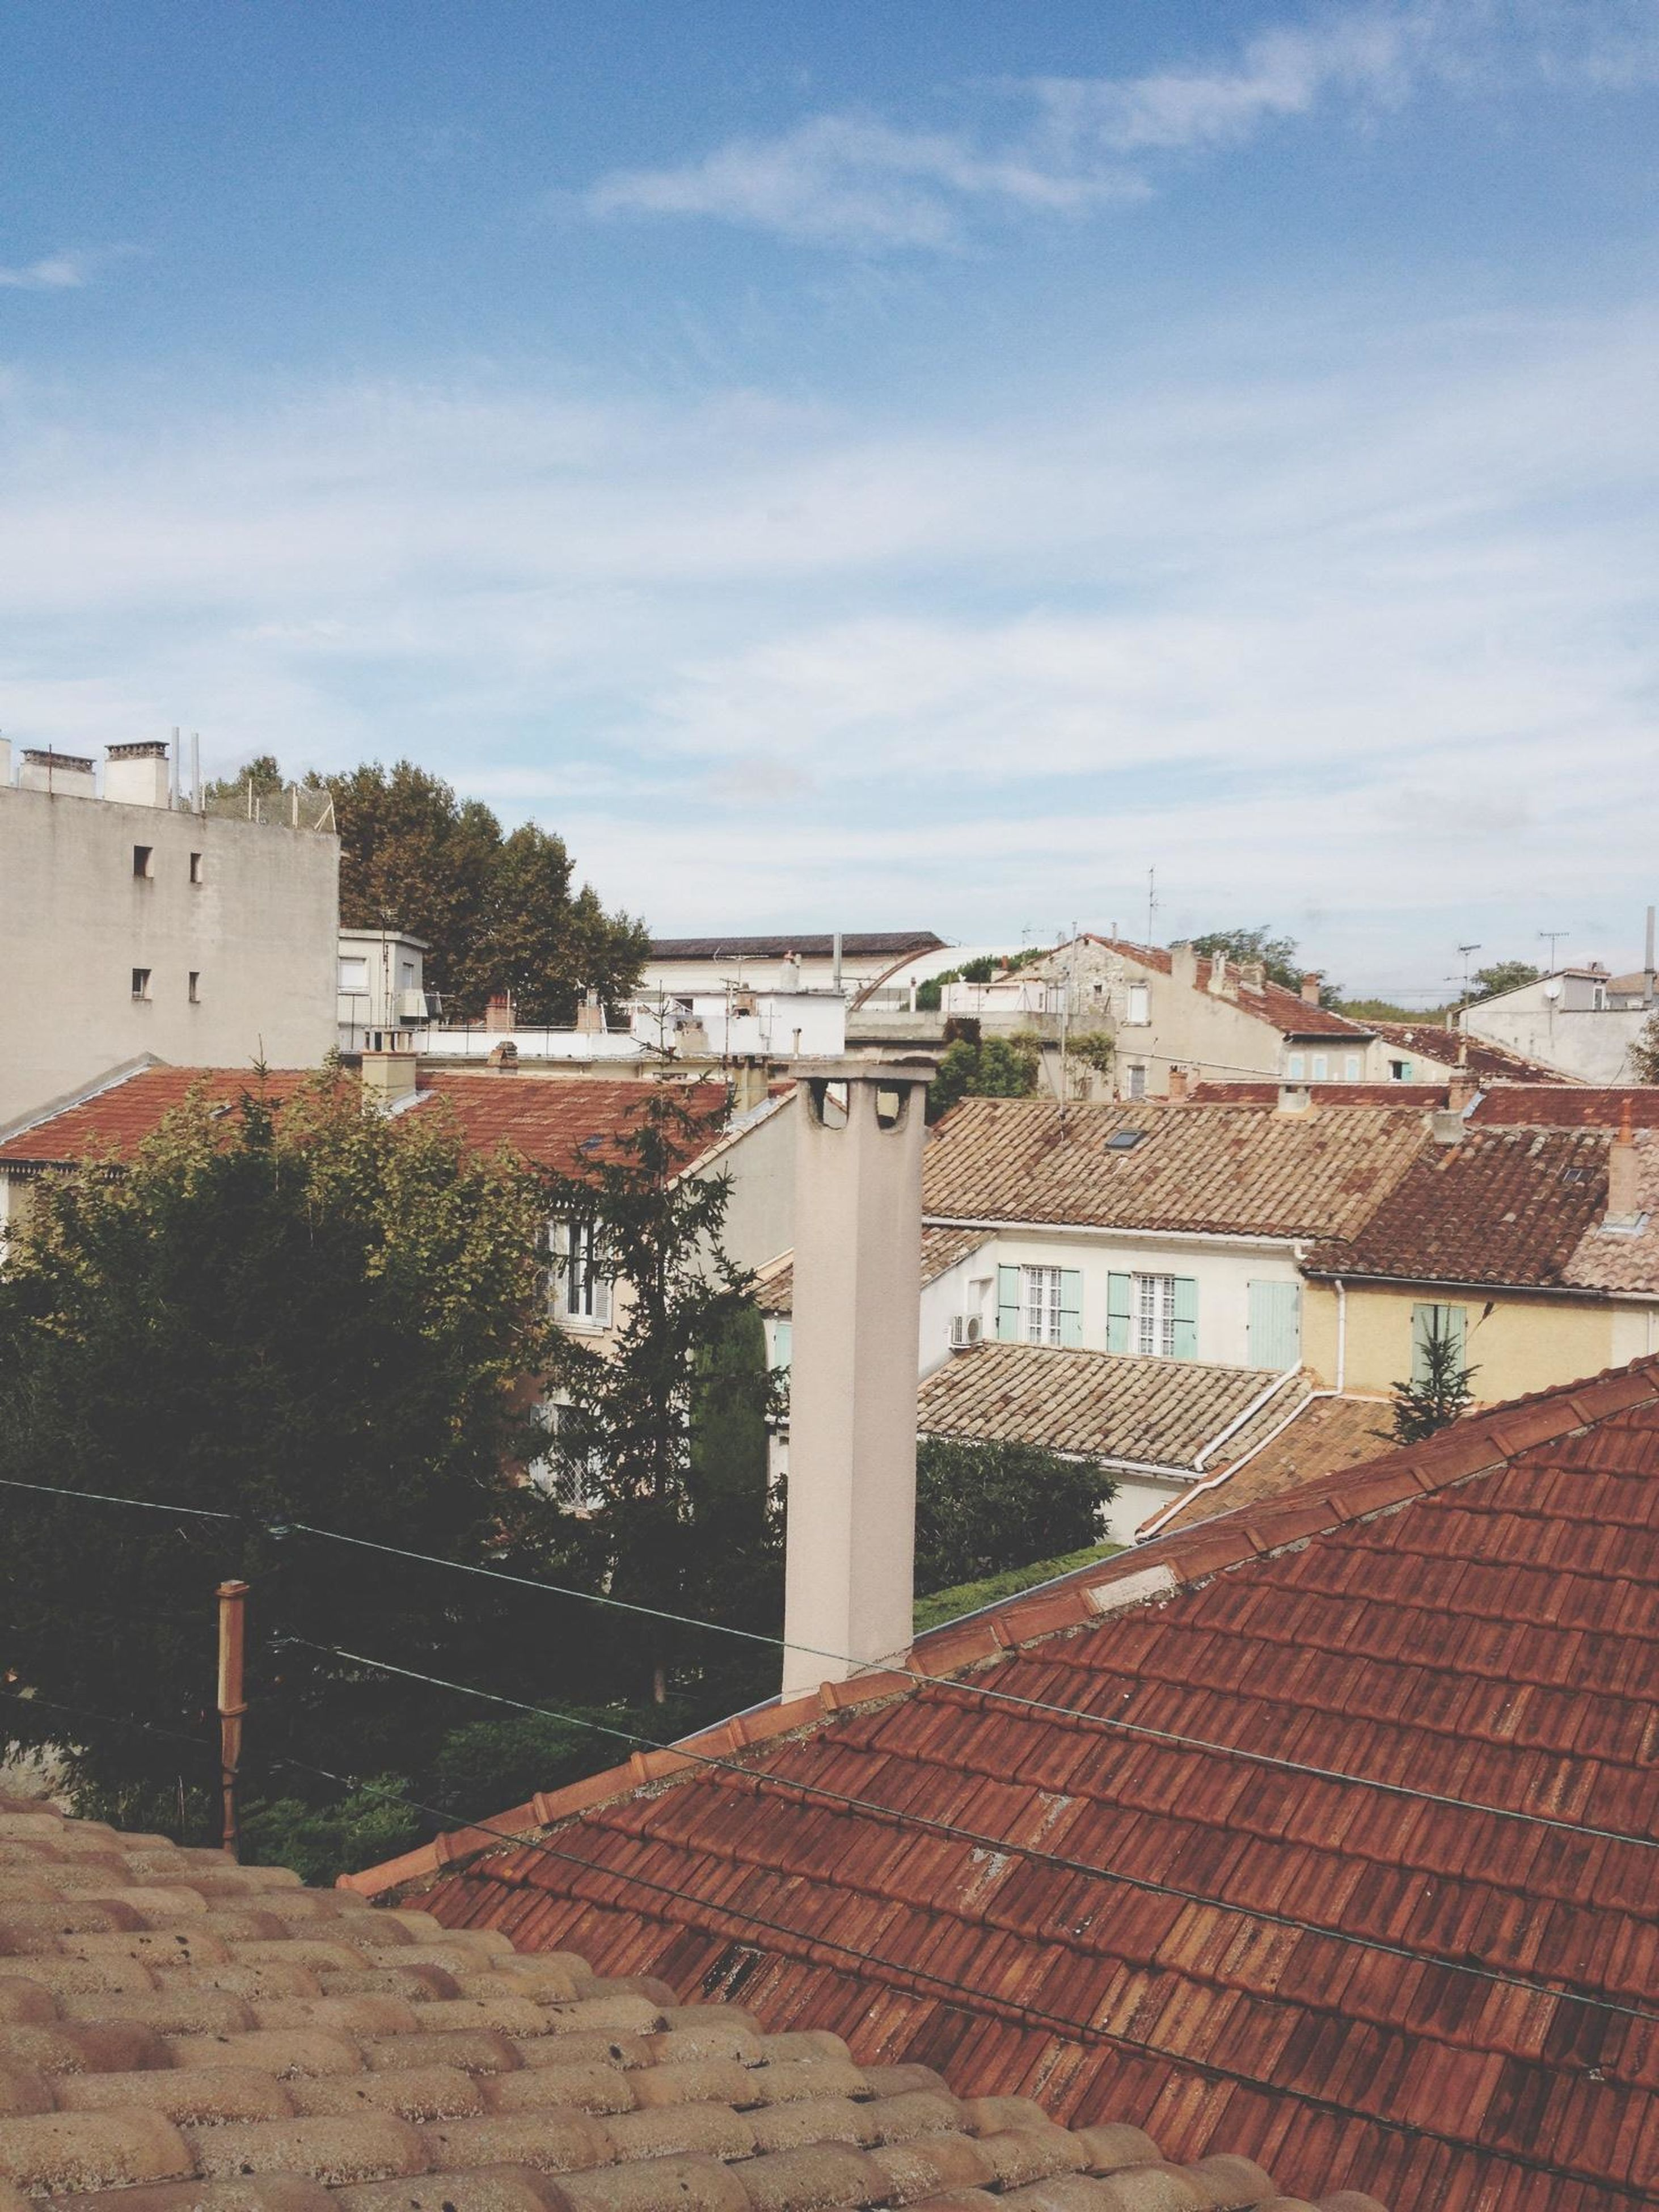 architecture, building exterior, built structure, sky, cloud - sky, roof, house, residential structure, residential building, city, cloud, sunlight, day, outdoors, tree, railing, town, footpath, walkway, residential district